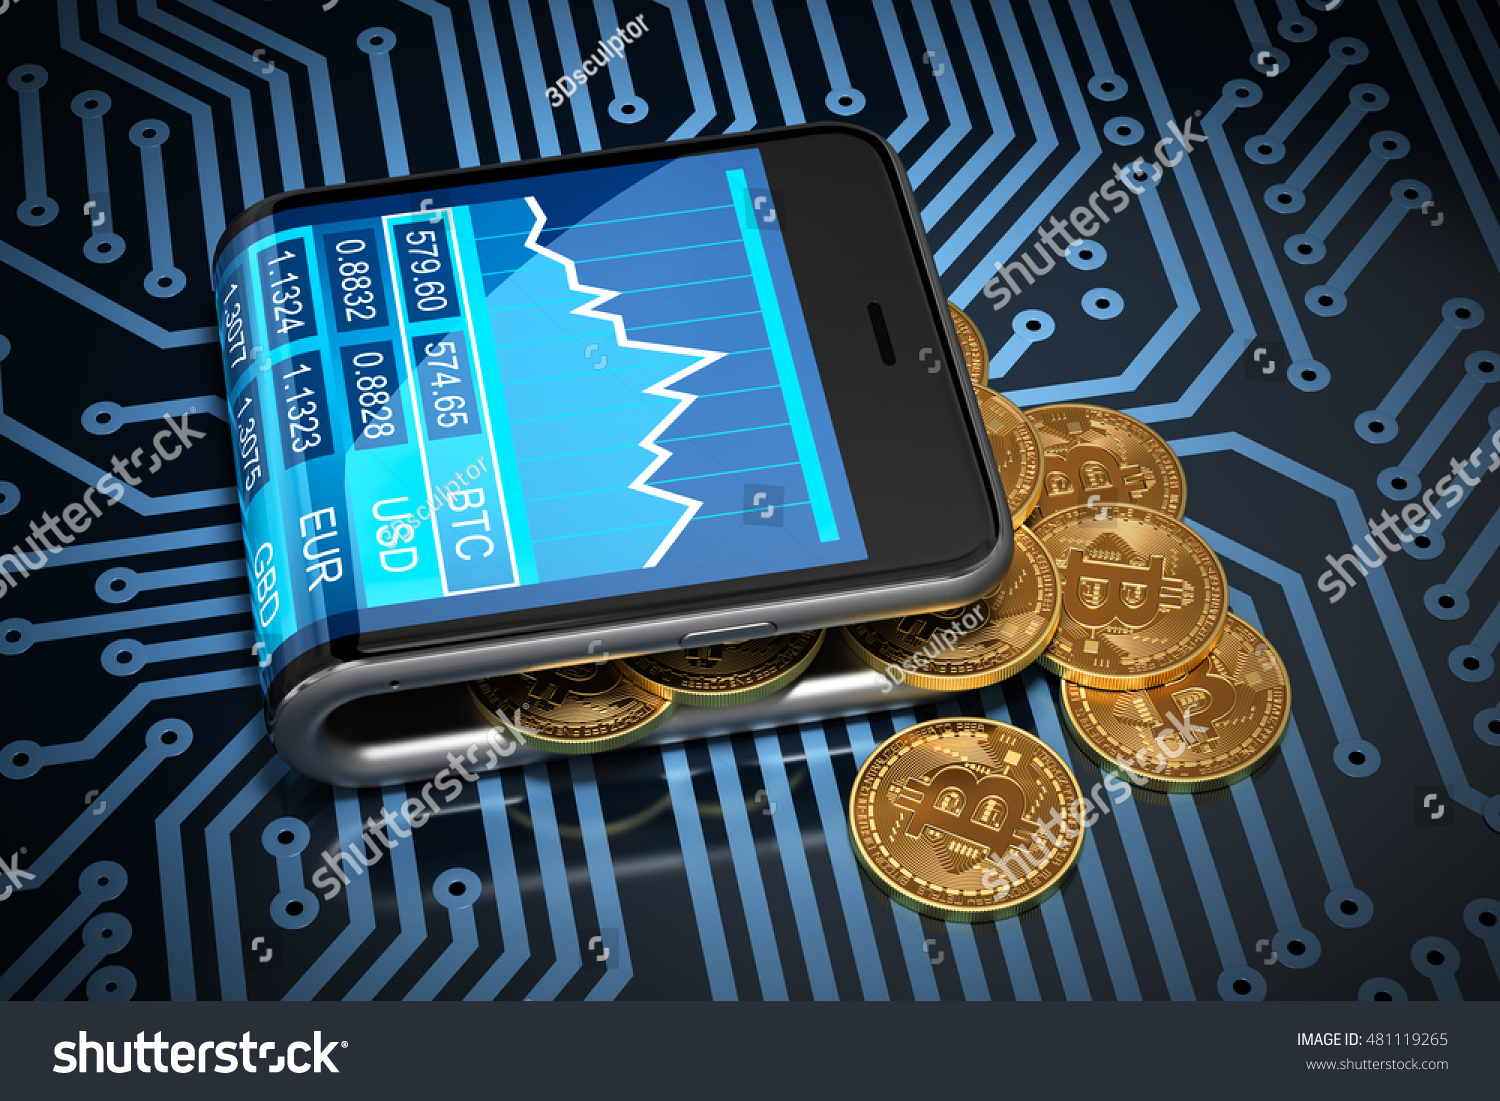 Concept Of Virtual Wallet And Bitcoins On Printed Circuit Board Illustration A Green Id 481119265